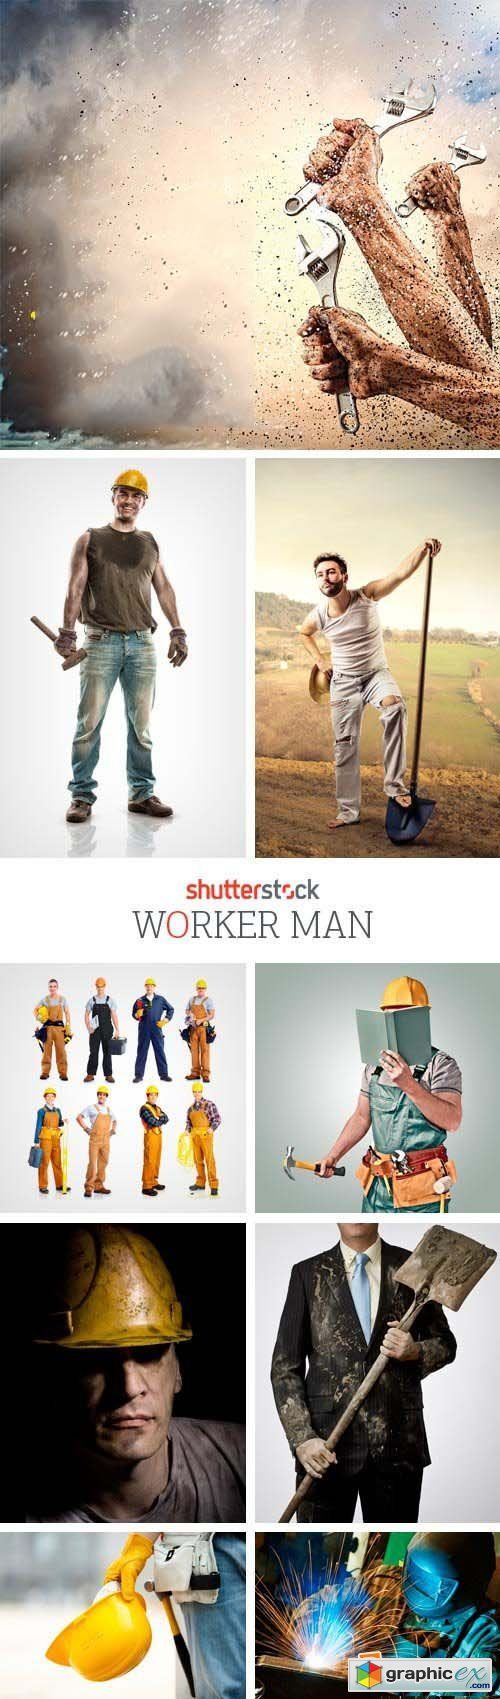 Amazing SS - Worker Man, 25xJPGs